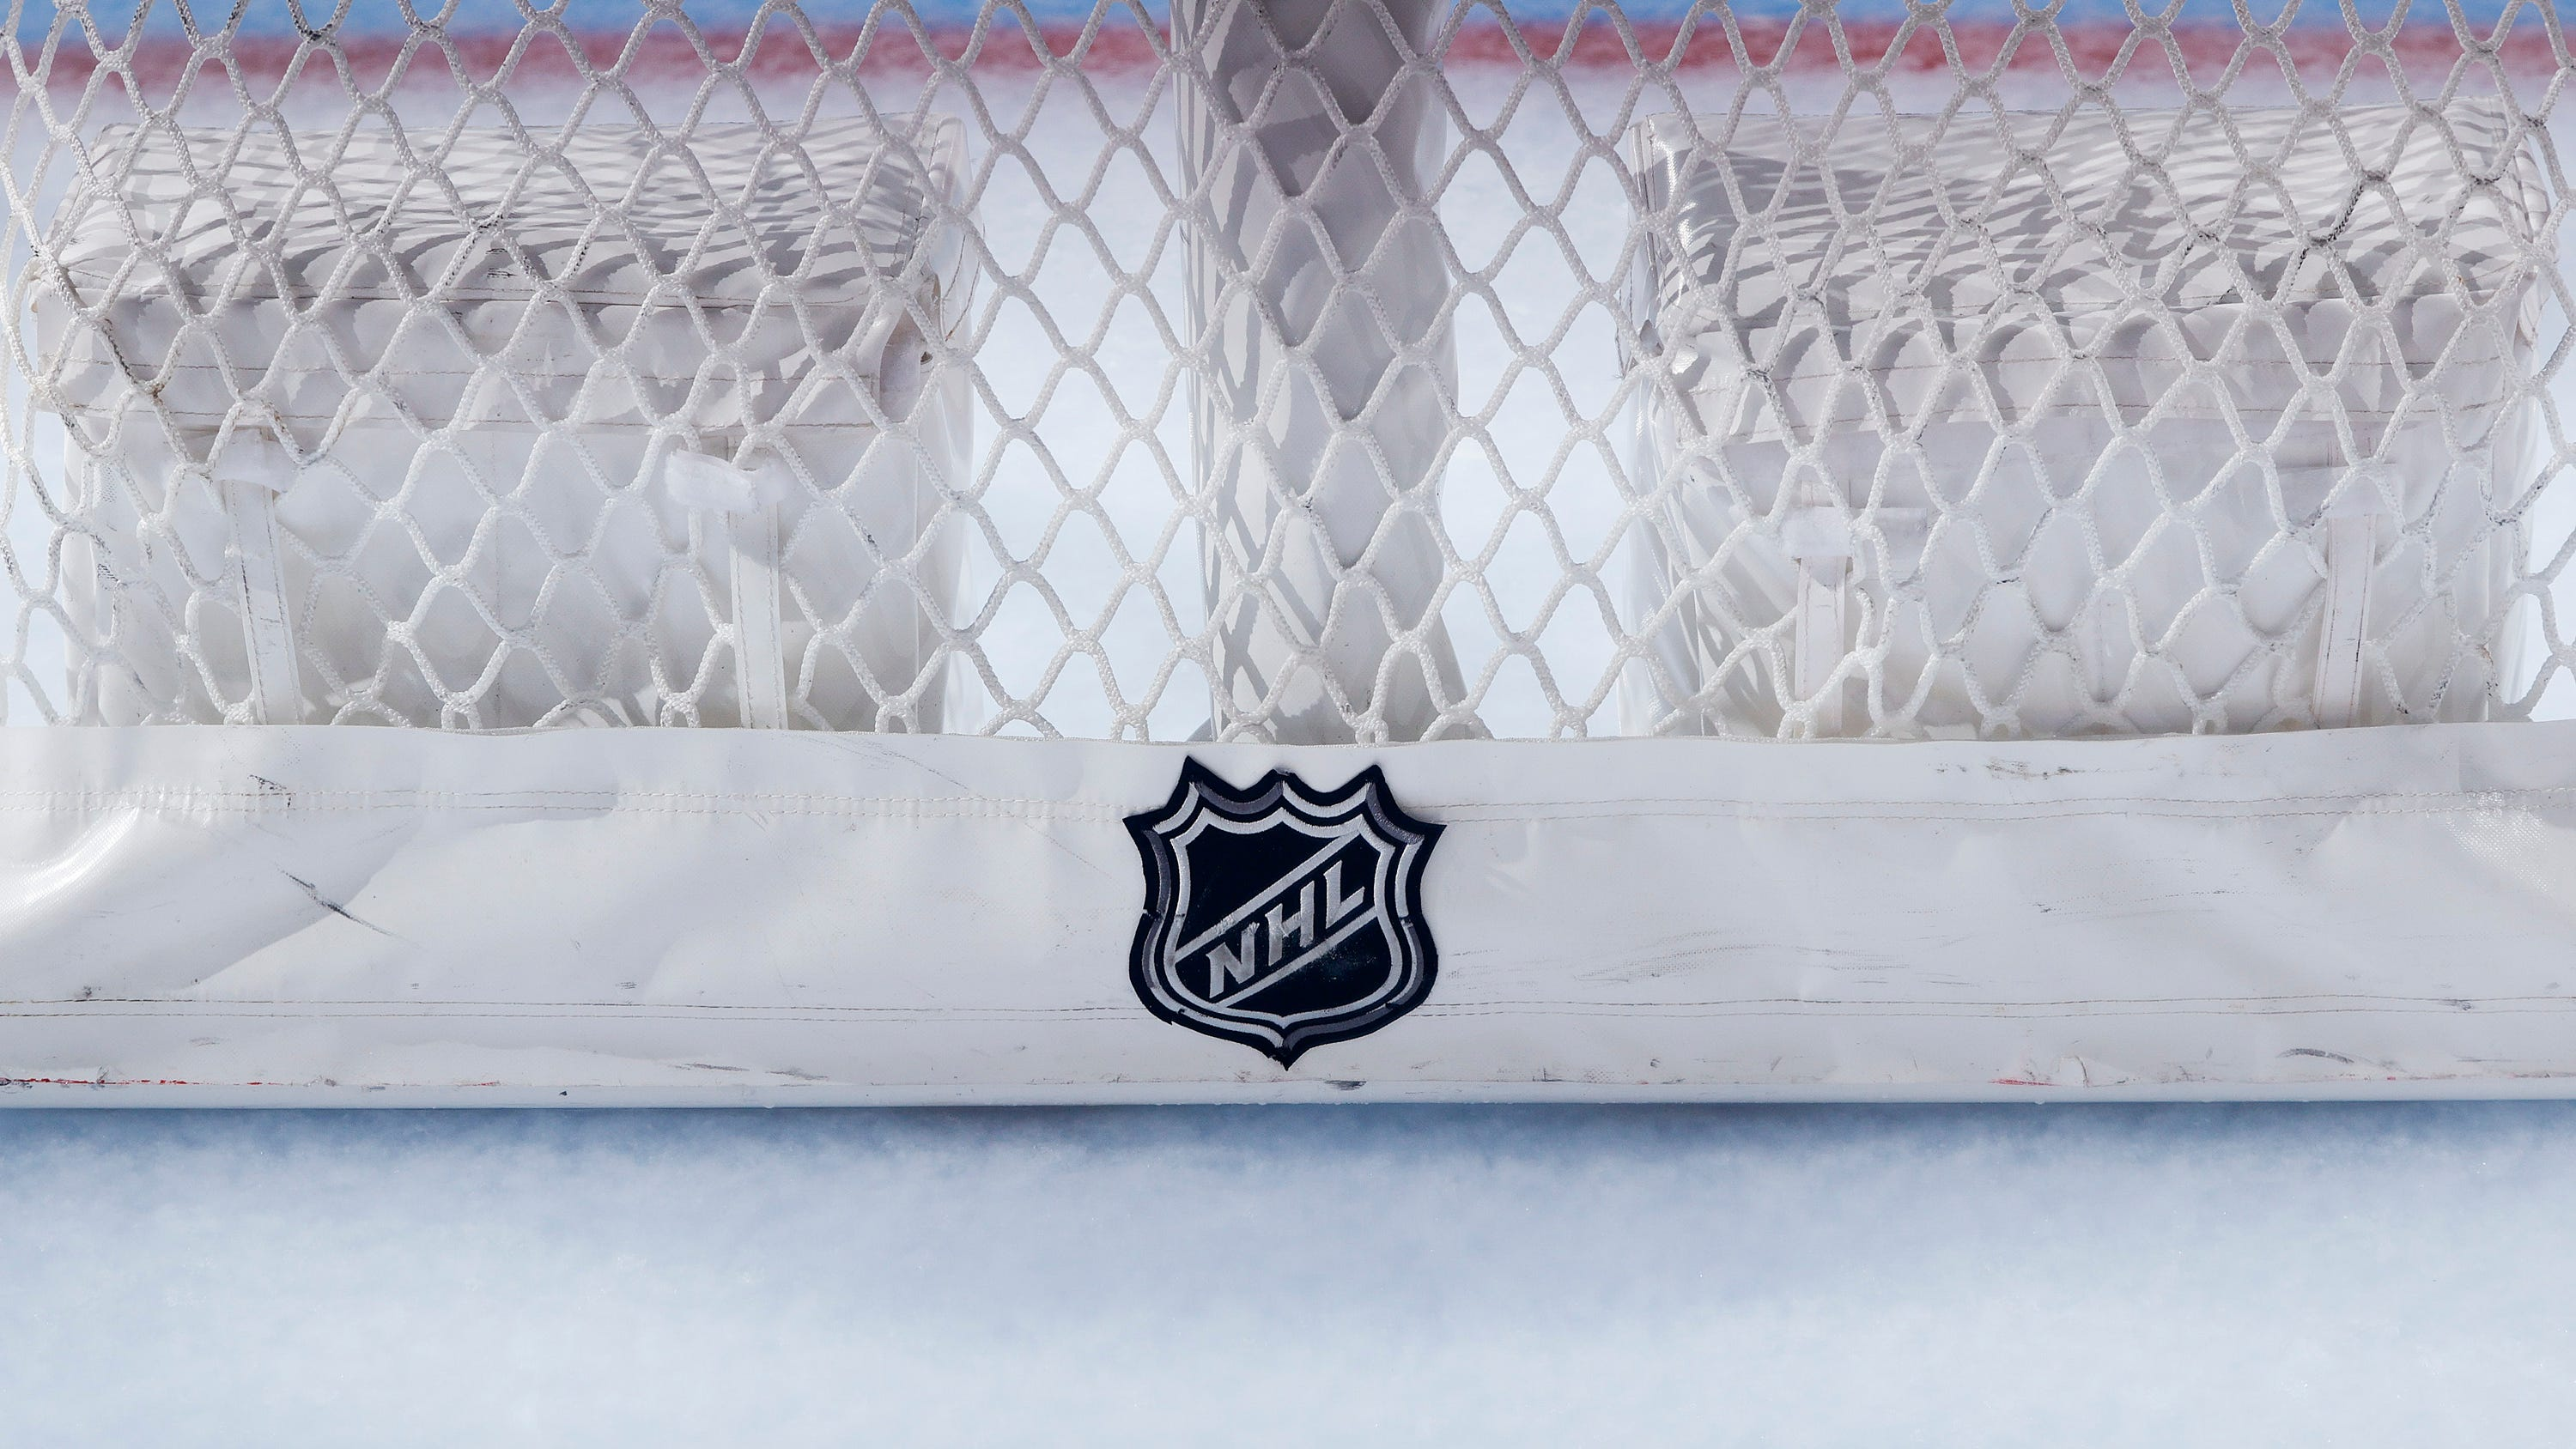 NHL, NHLPA to have tough guidelines for unvaccinated players this season